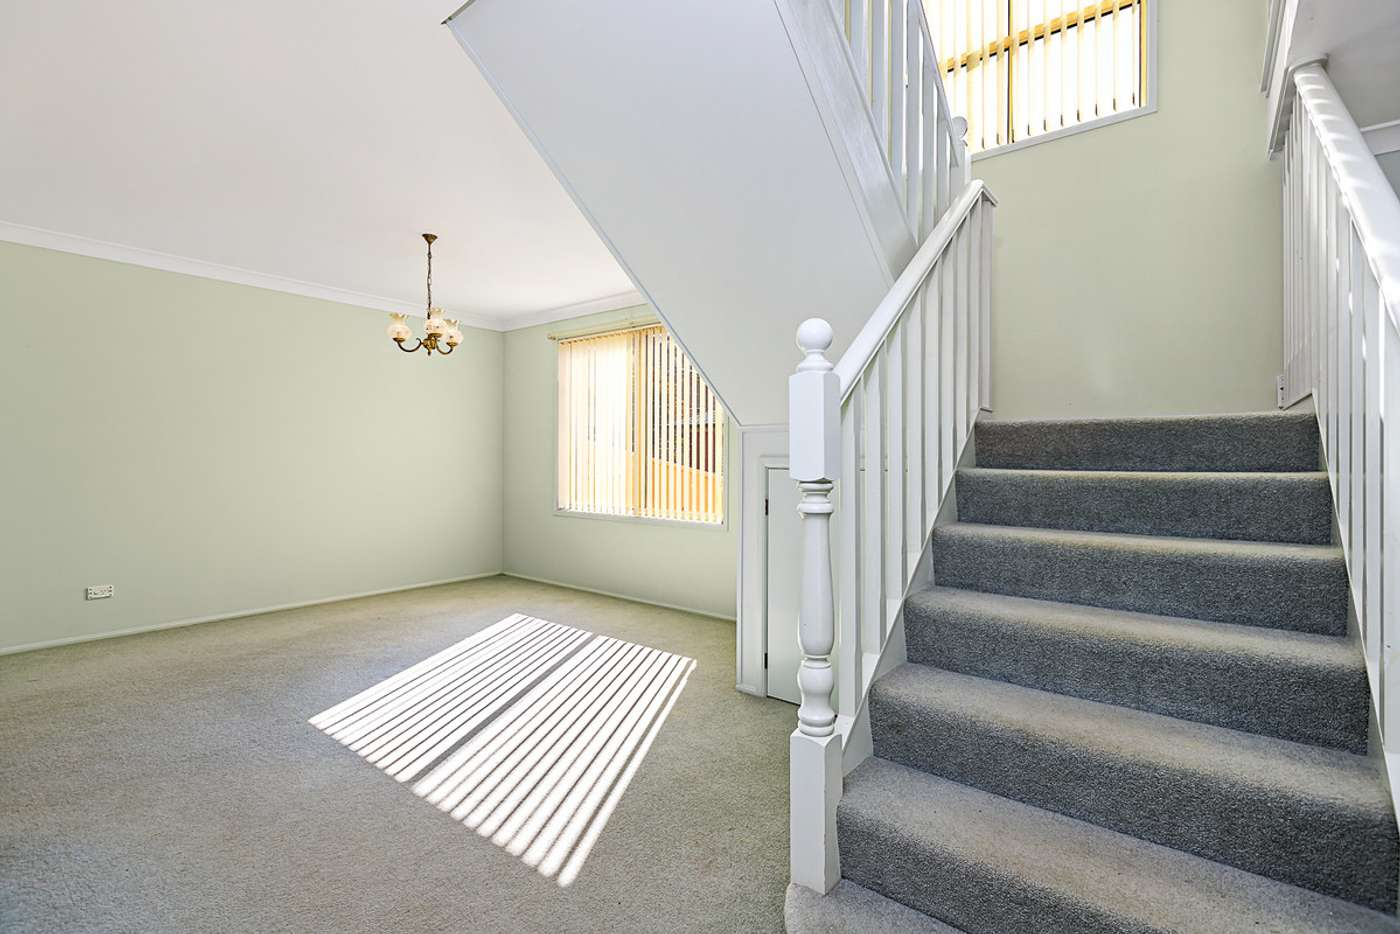 Fifth view of Homely house listing, 6 Seafarer Close, Belmont NSW 2280